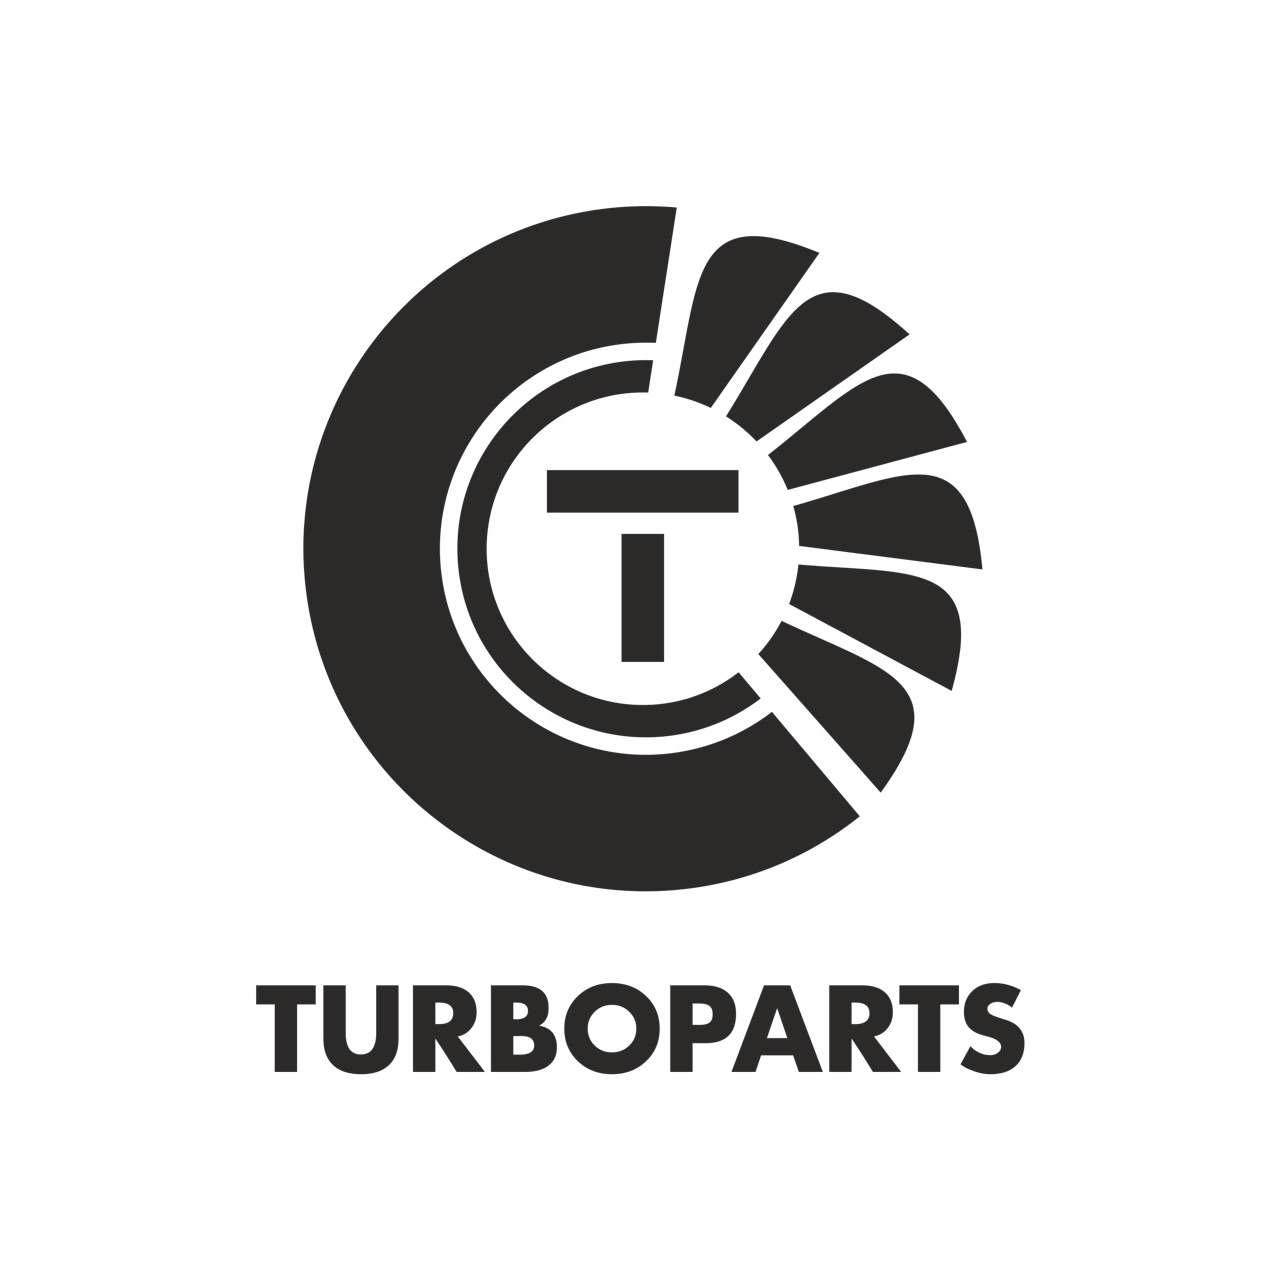 Turboparts – Korean car parts manufacturer